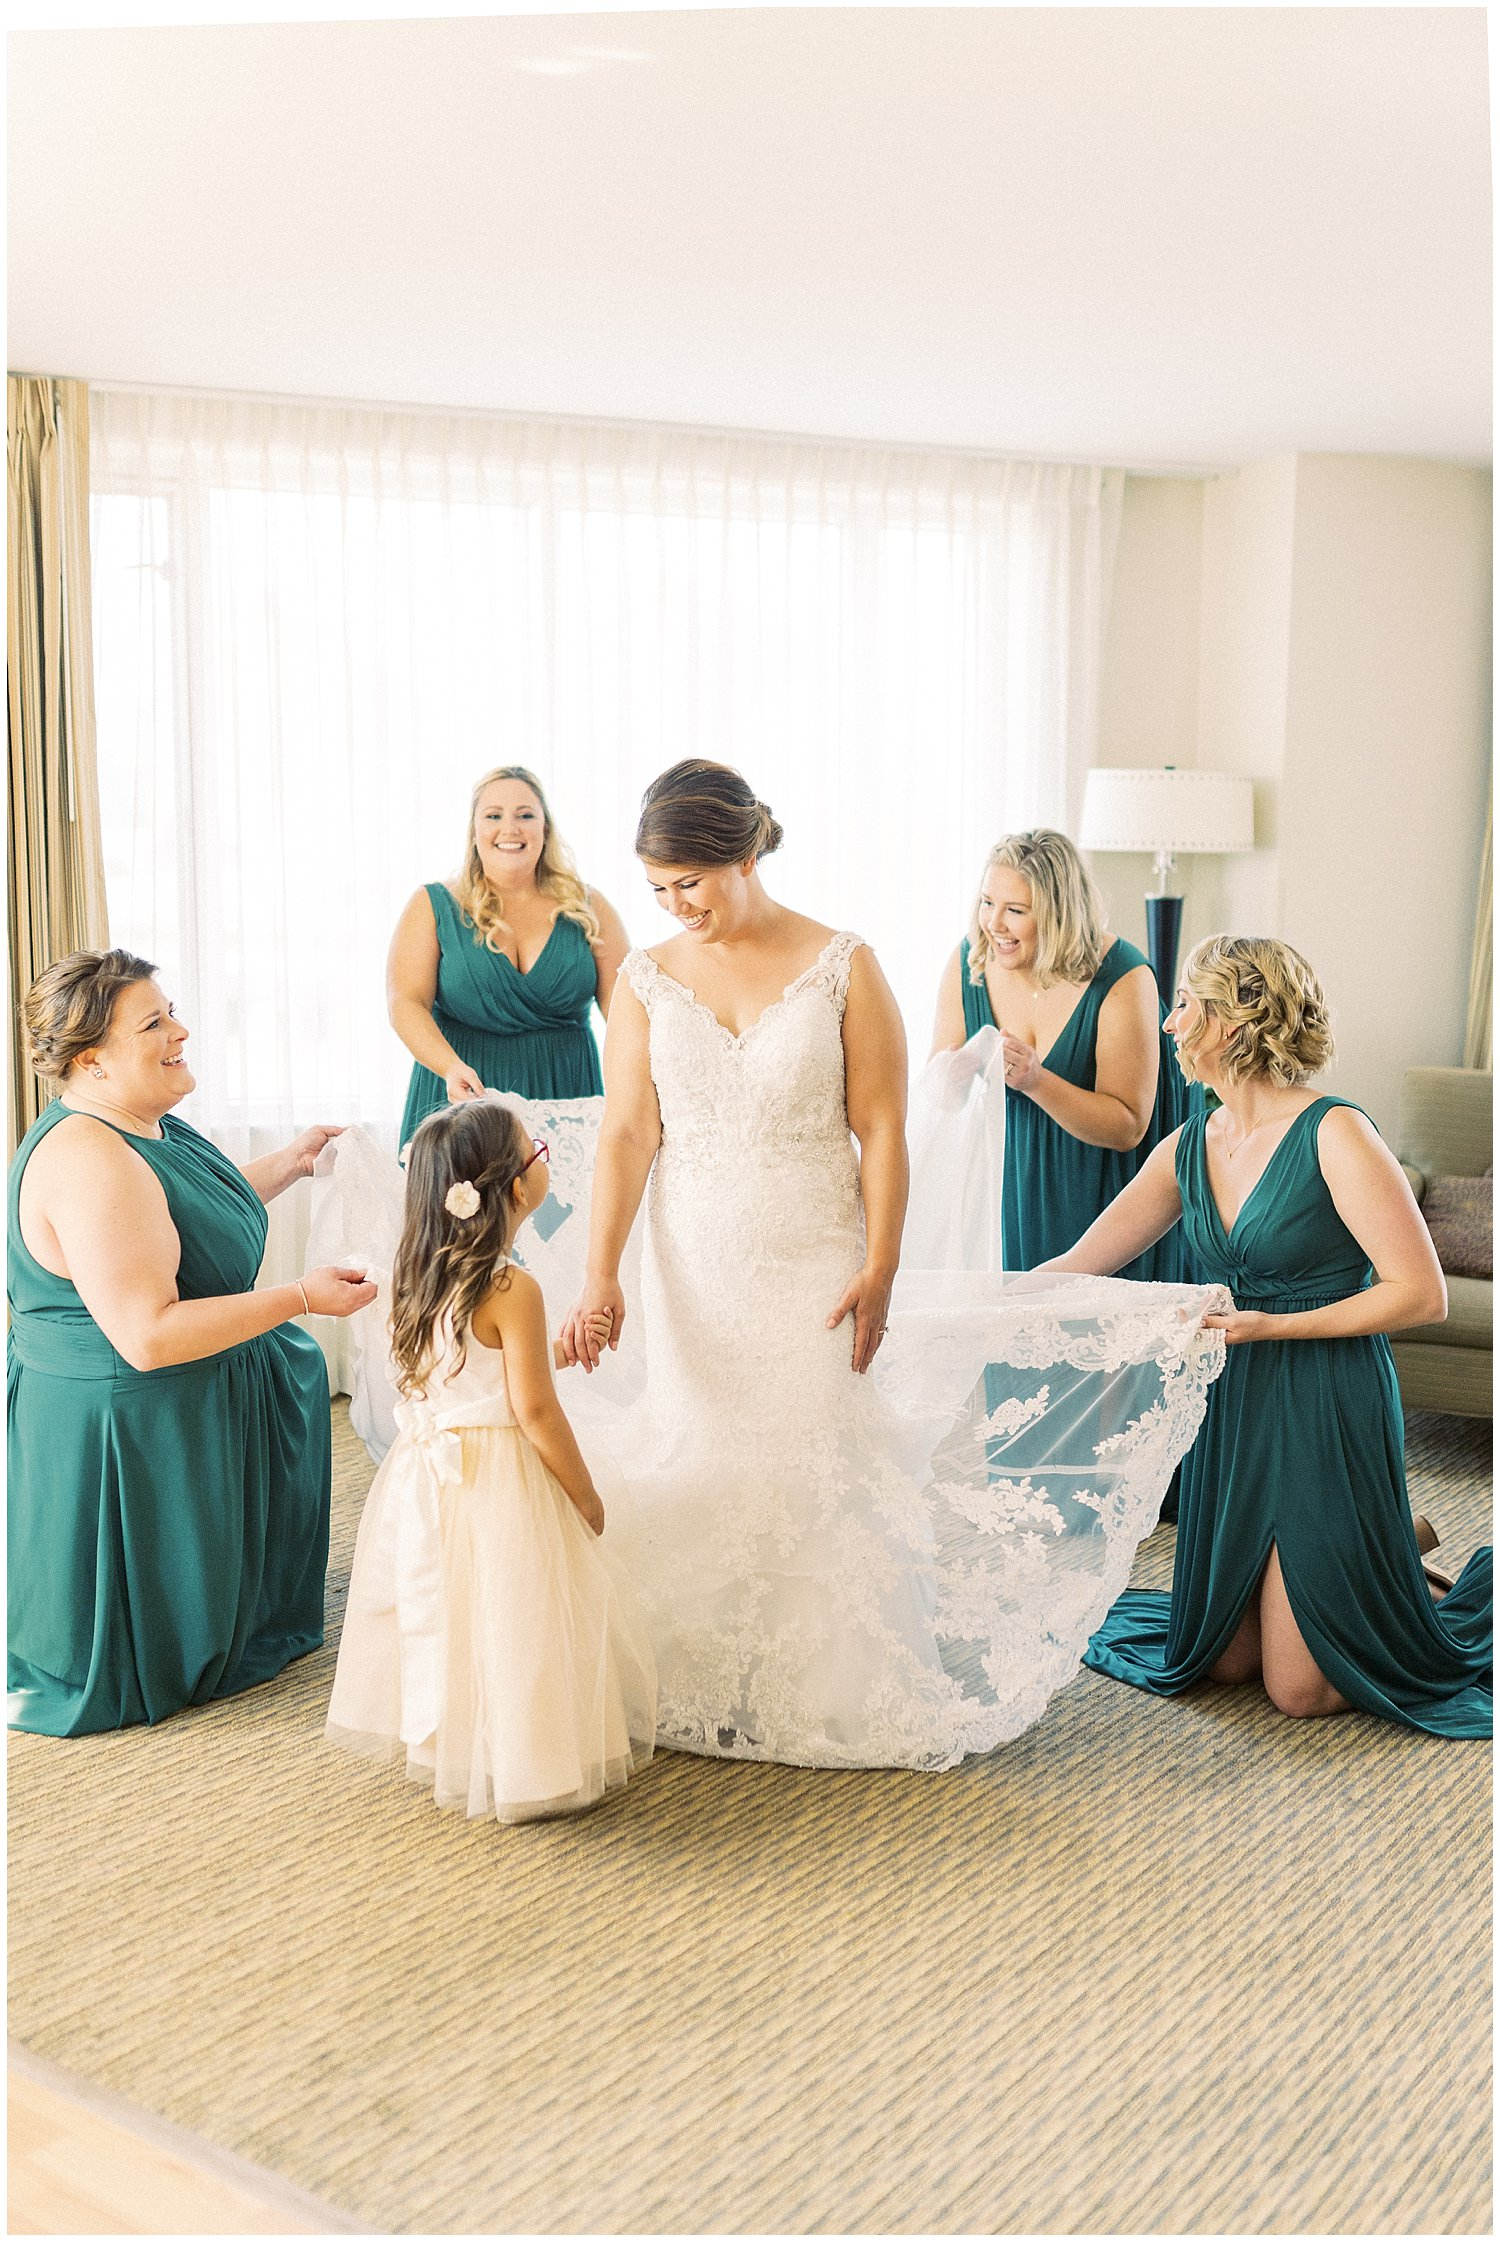 Bride with hunter green bridesmaid dresses from Azazie